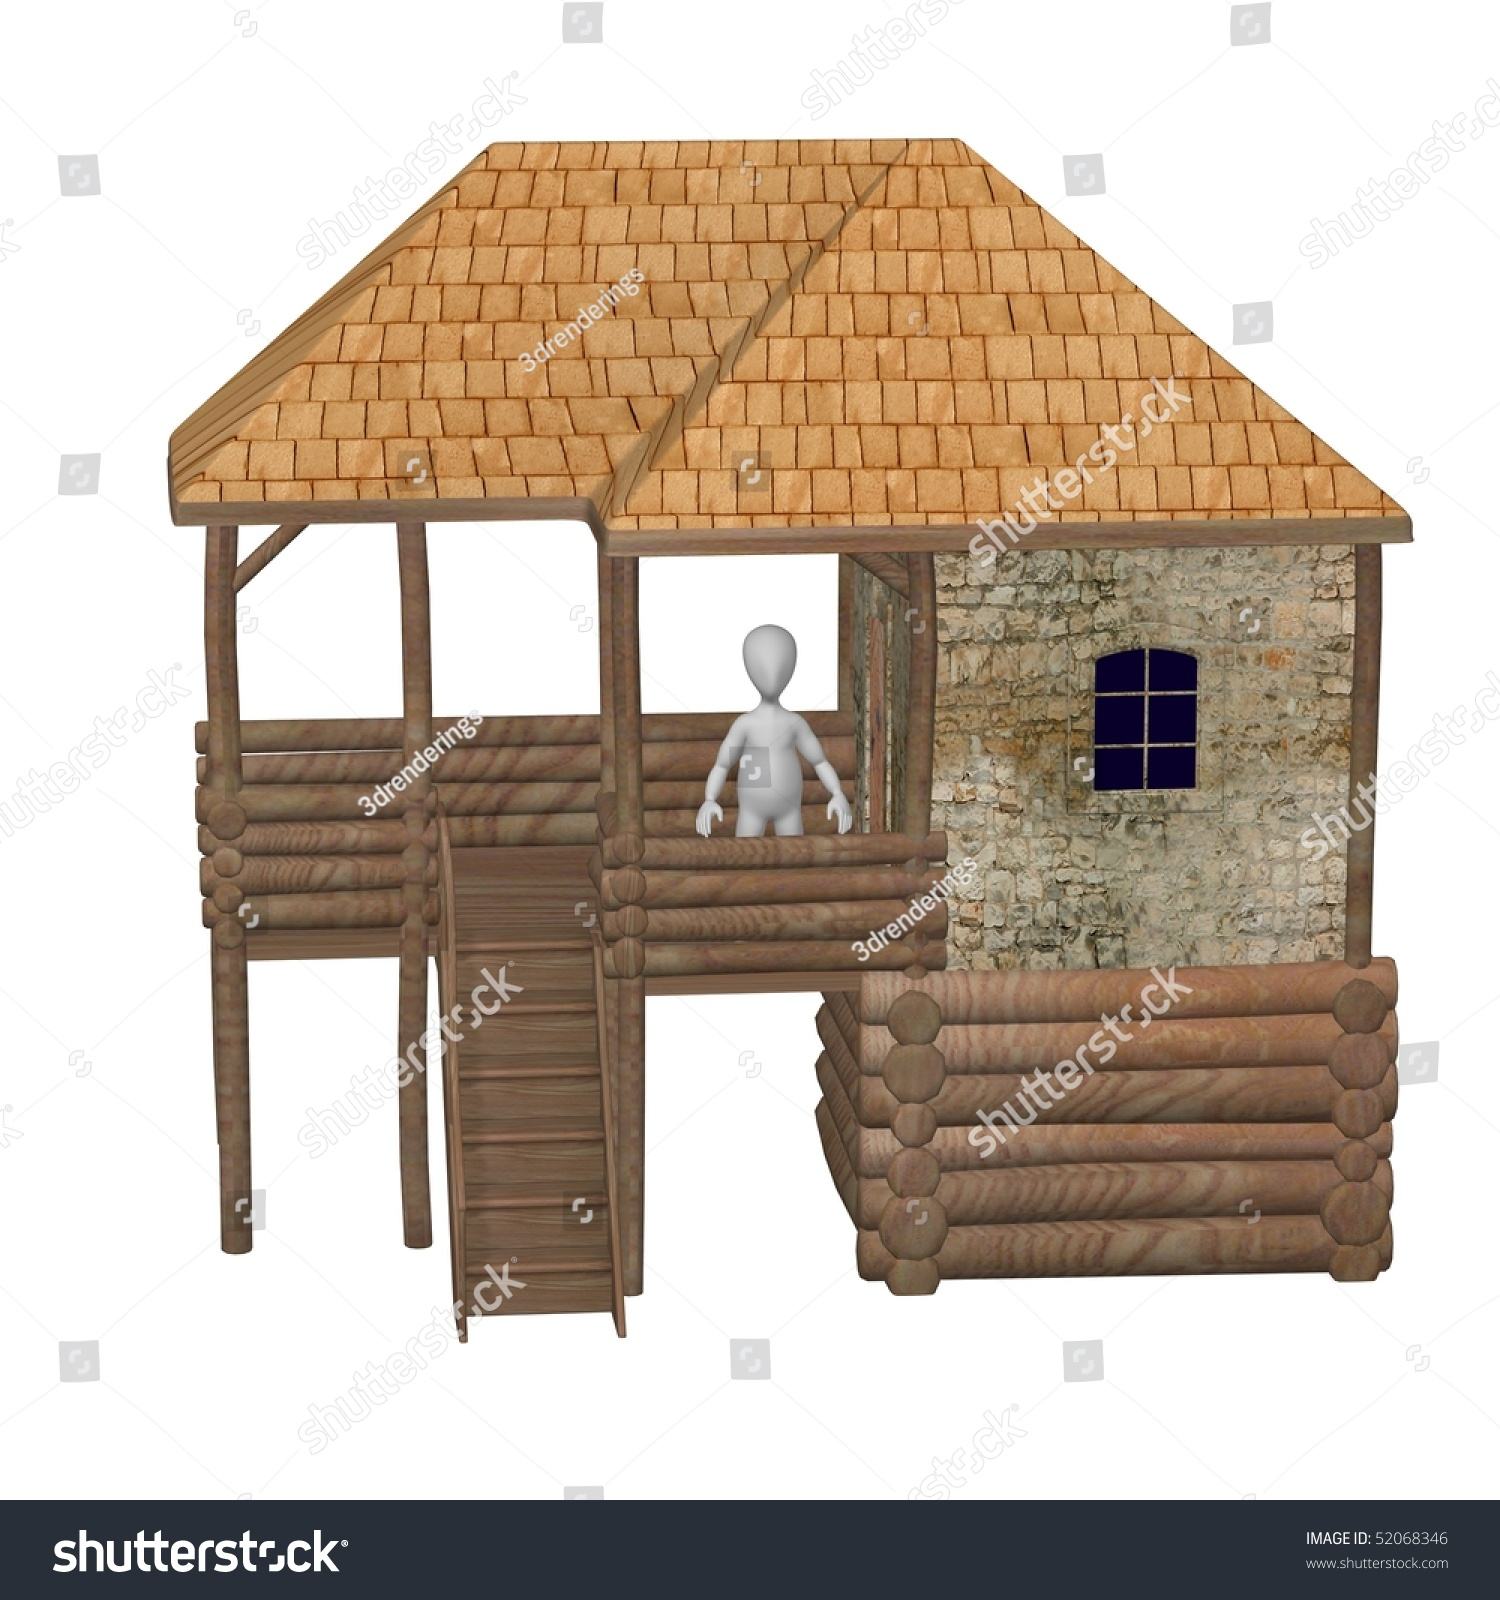 Cartoon Characters Houses : D render of cartoon character with house stock photo